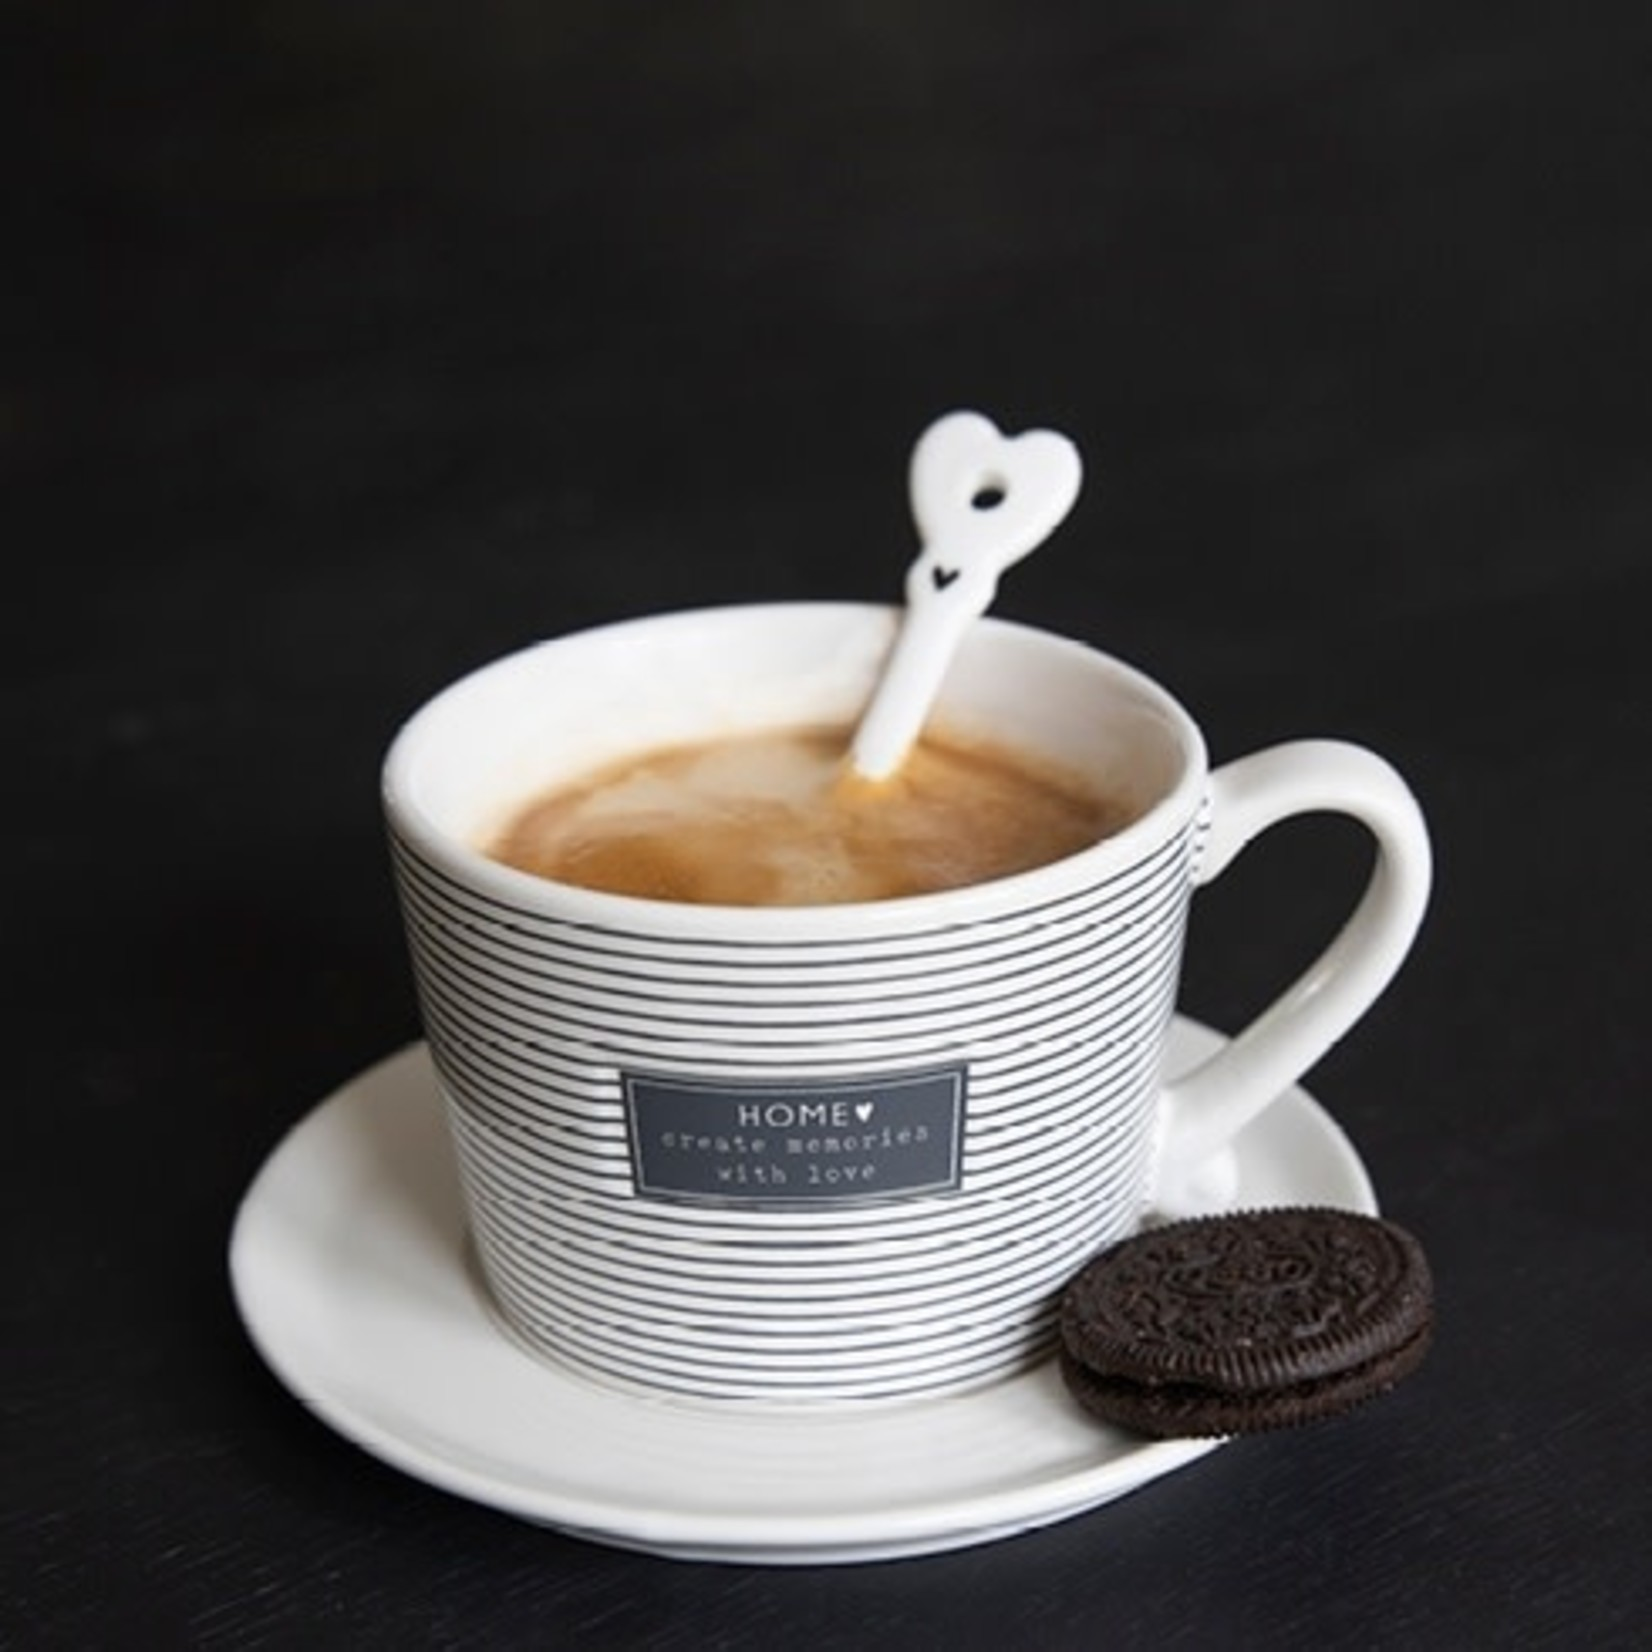 Bastion Collections Cup large White Create Memories in Black